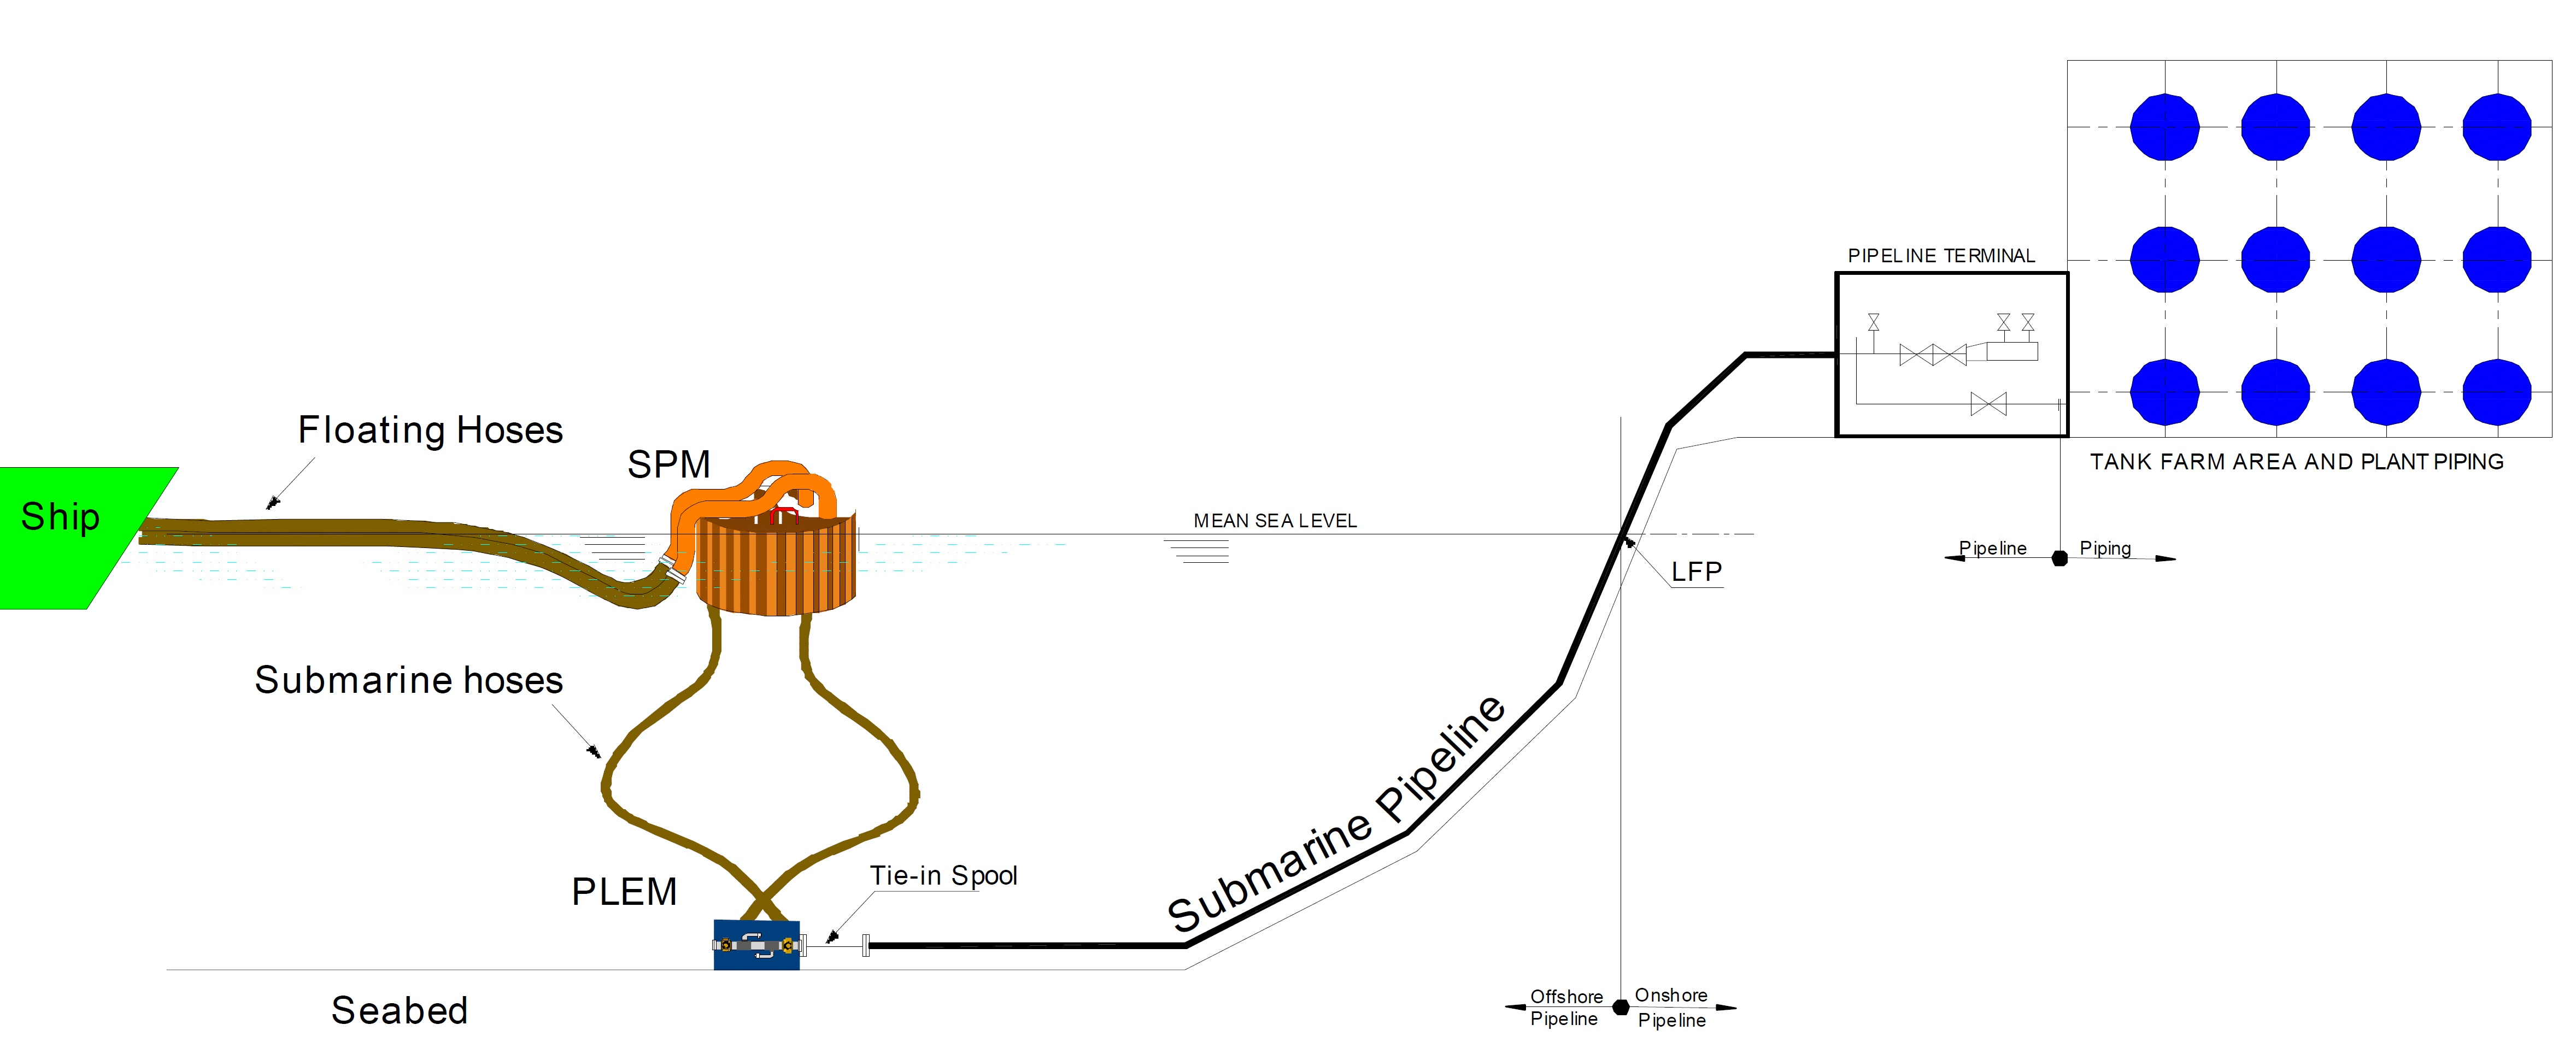 Pipeline vs Piping | all about pipelines